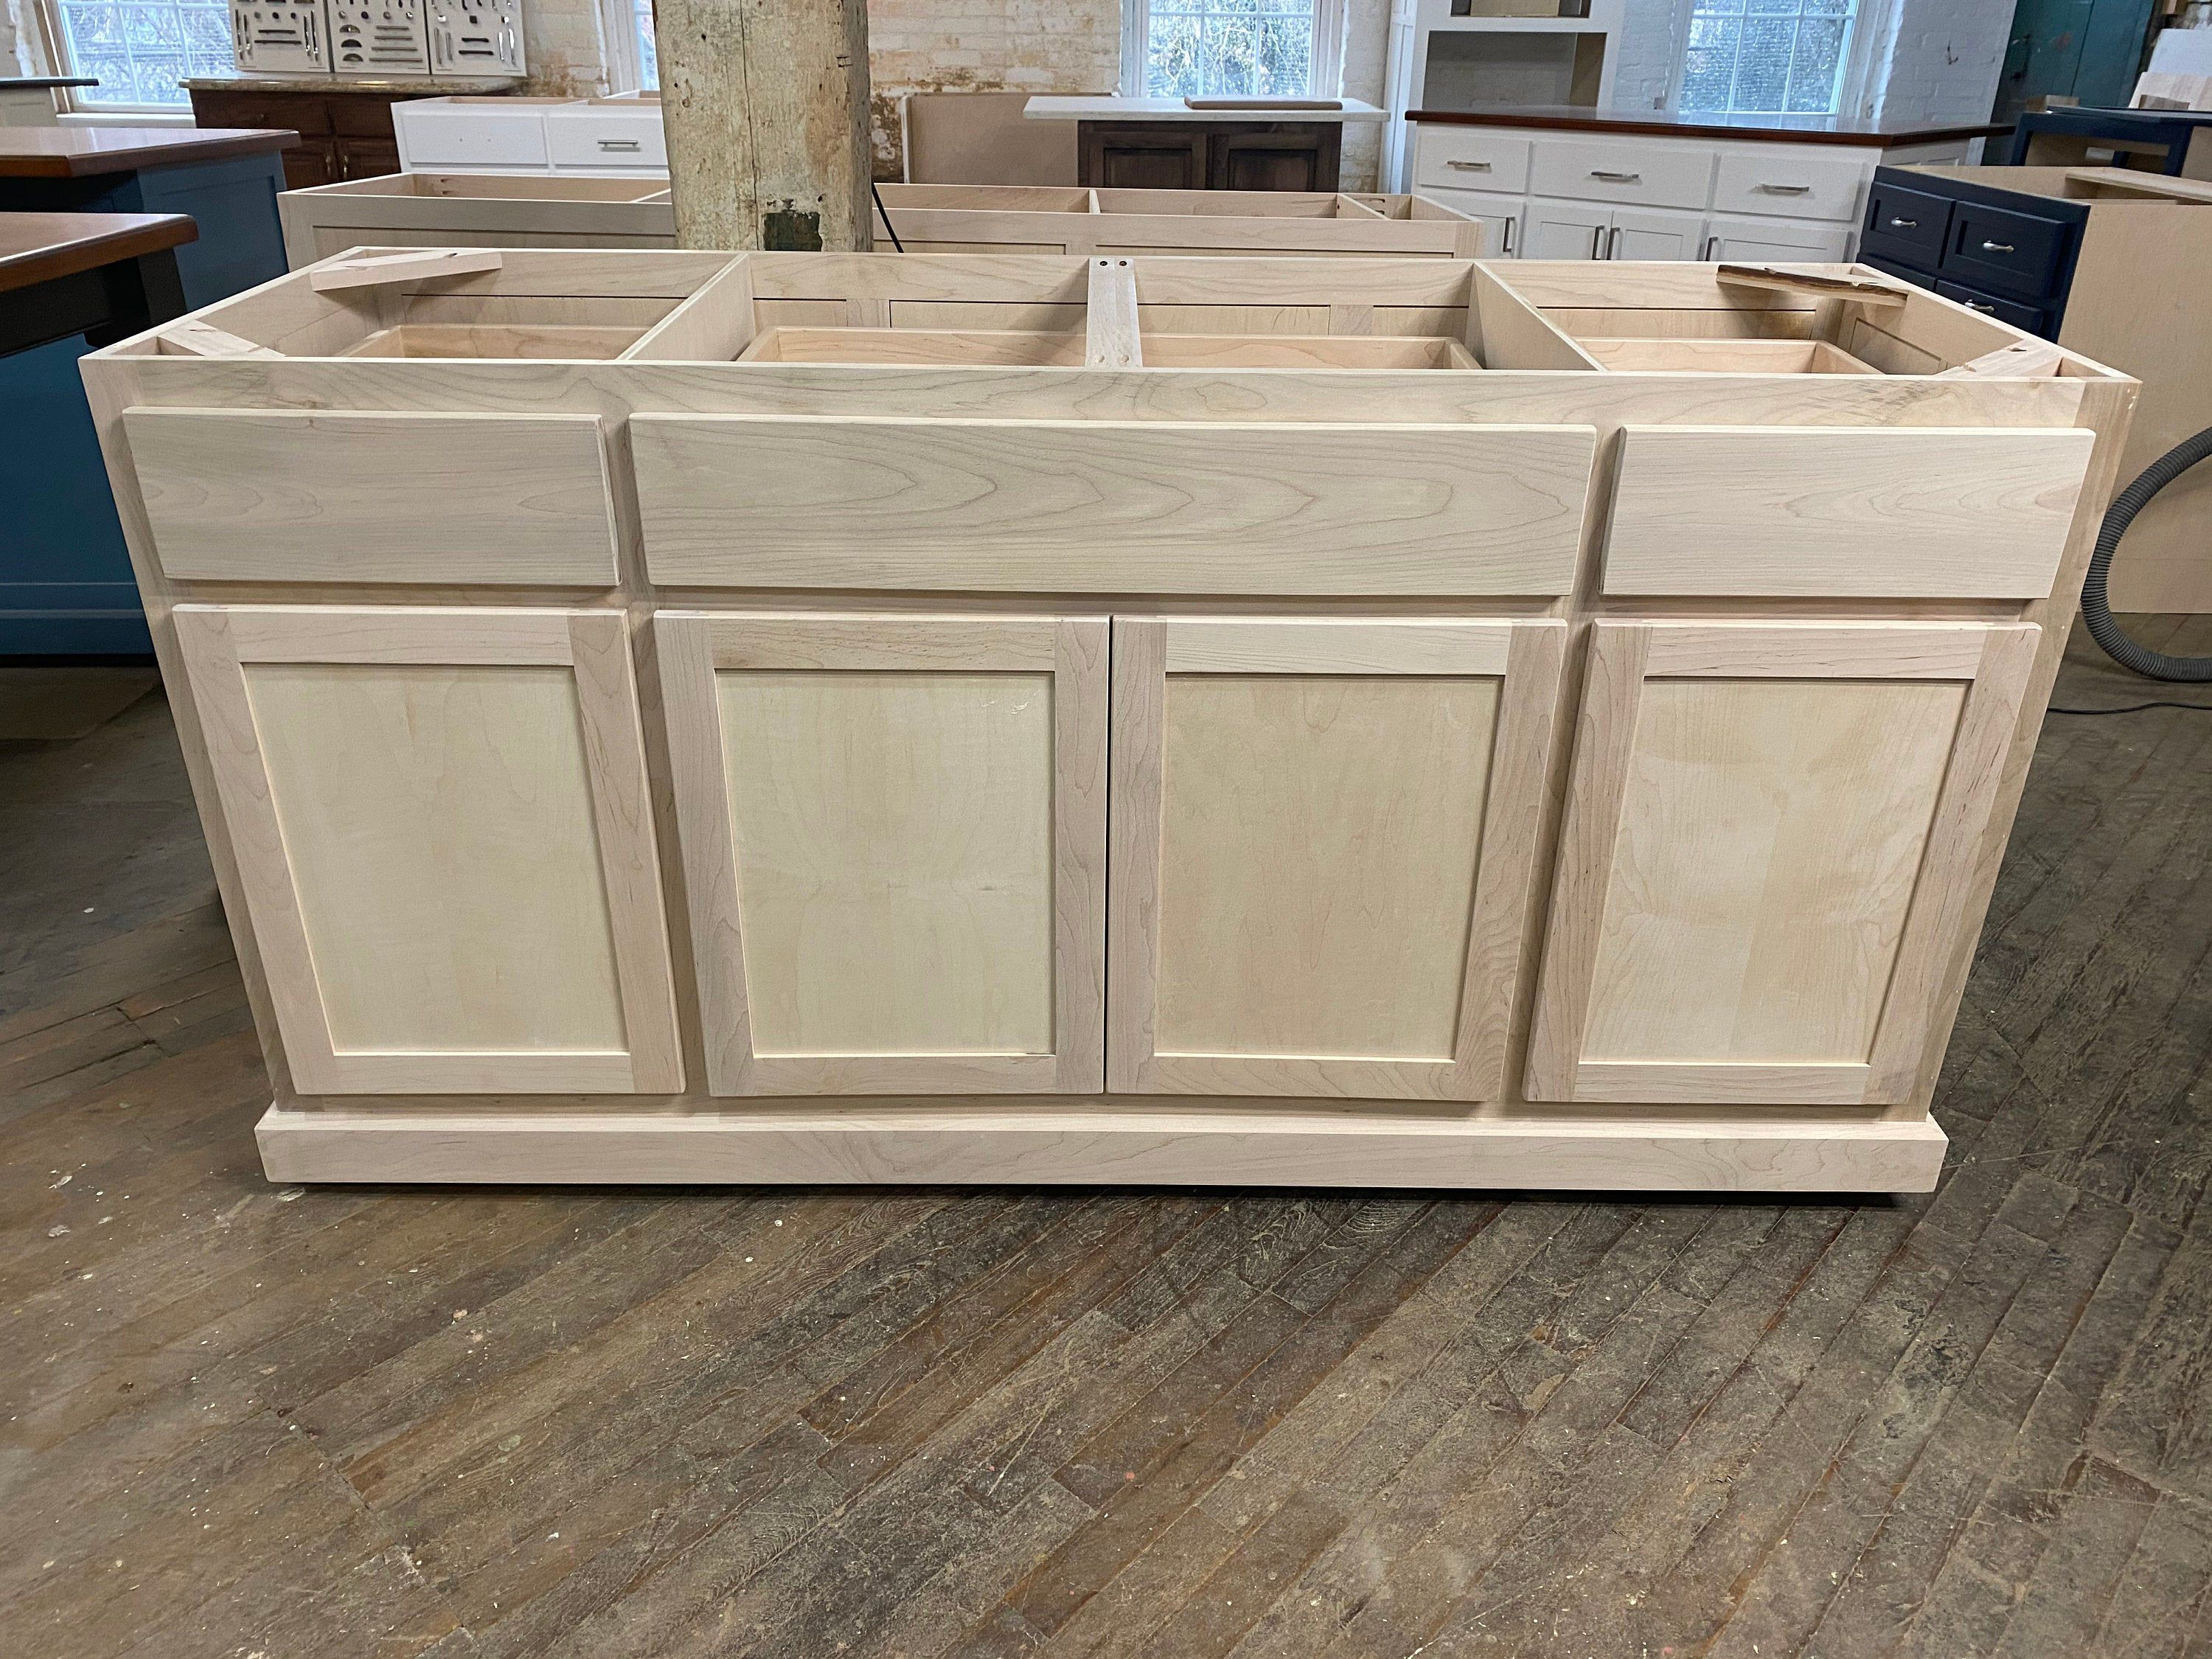 Diy Ready To Paint Cabinet Kitchen Island Custom In 2020 Unfinished Cabinets Kitchen Island With Seating Painting Cabinets